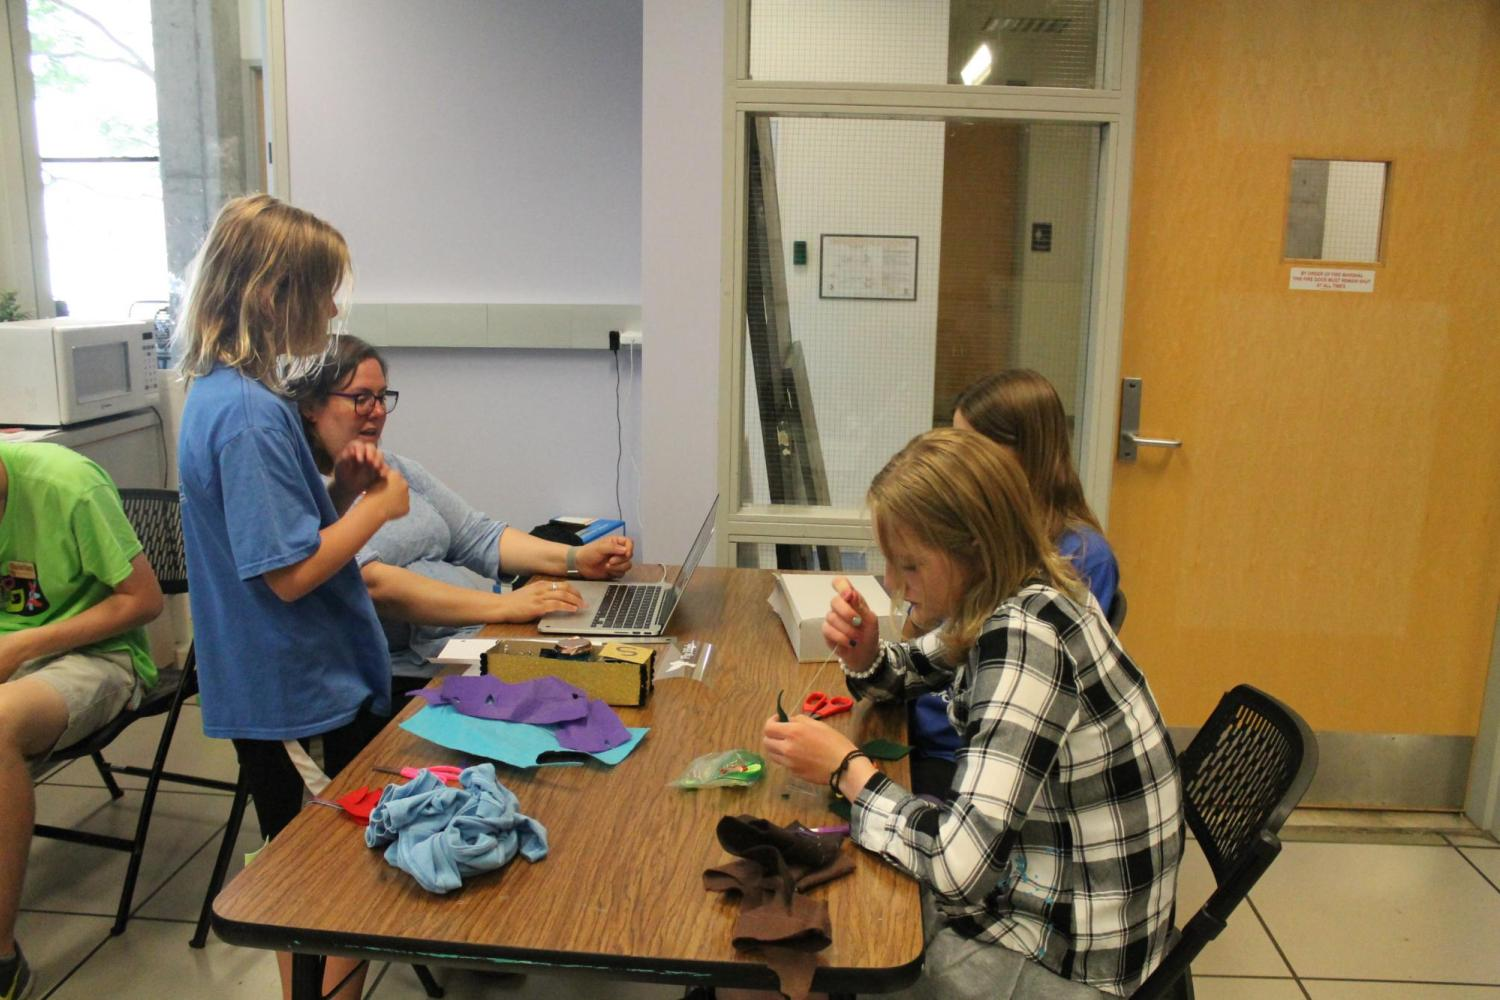 students with teacher at table, handsewing